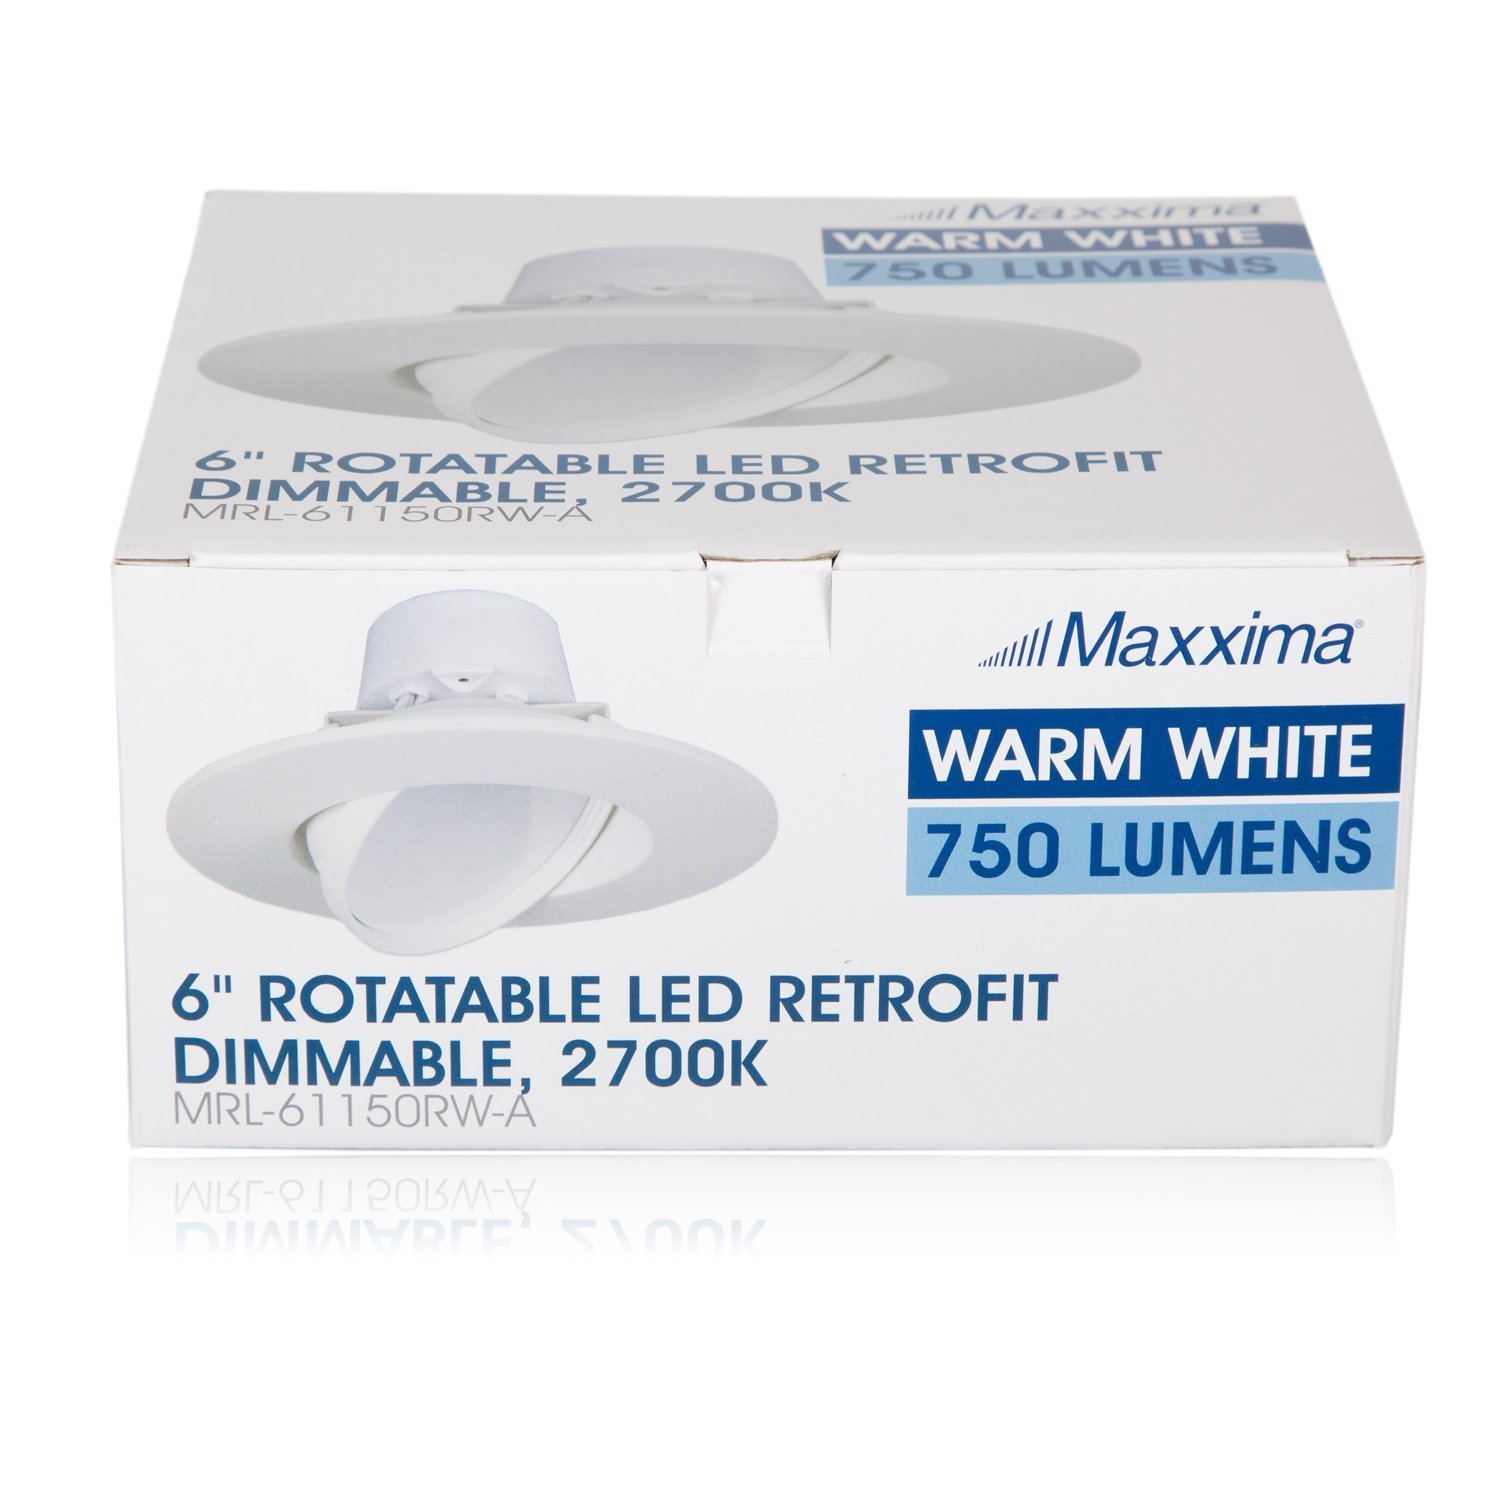 11 Watt 6-Inch Rotatable 750 Lumens Maxxima LED Retrofit Downlight Gimbal Warm White 2700k Dimmable, Straight E26 Connection Cable, Energy Star MRL-61150RW-A